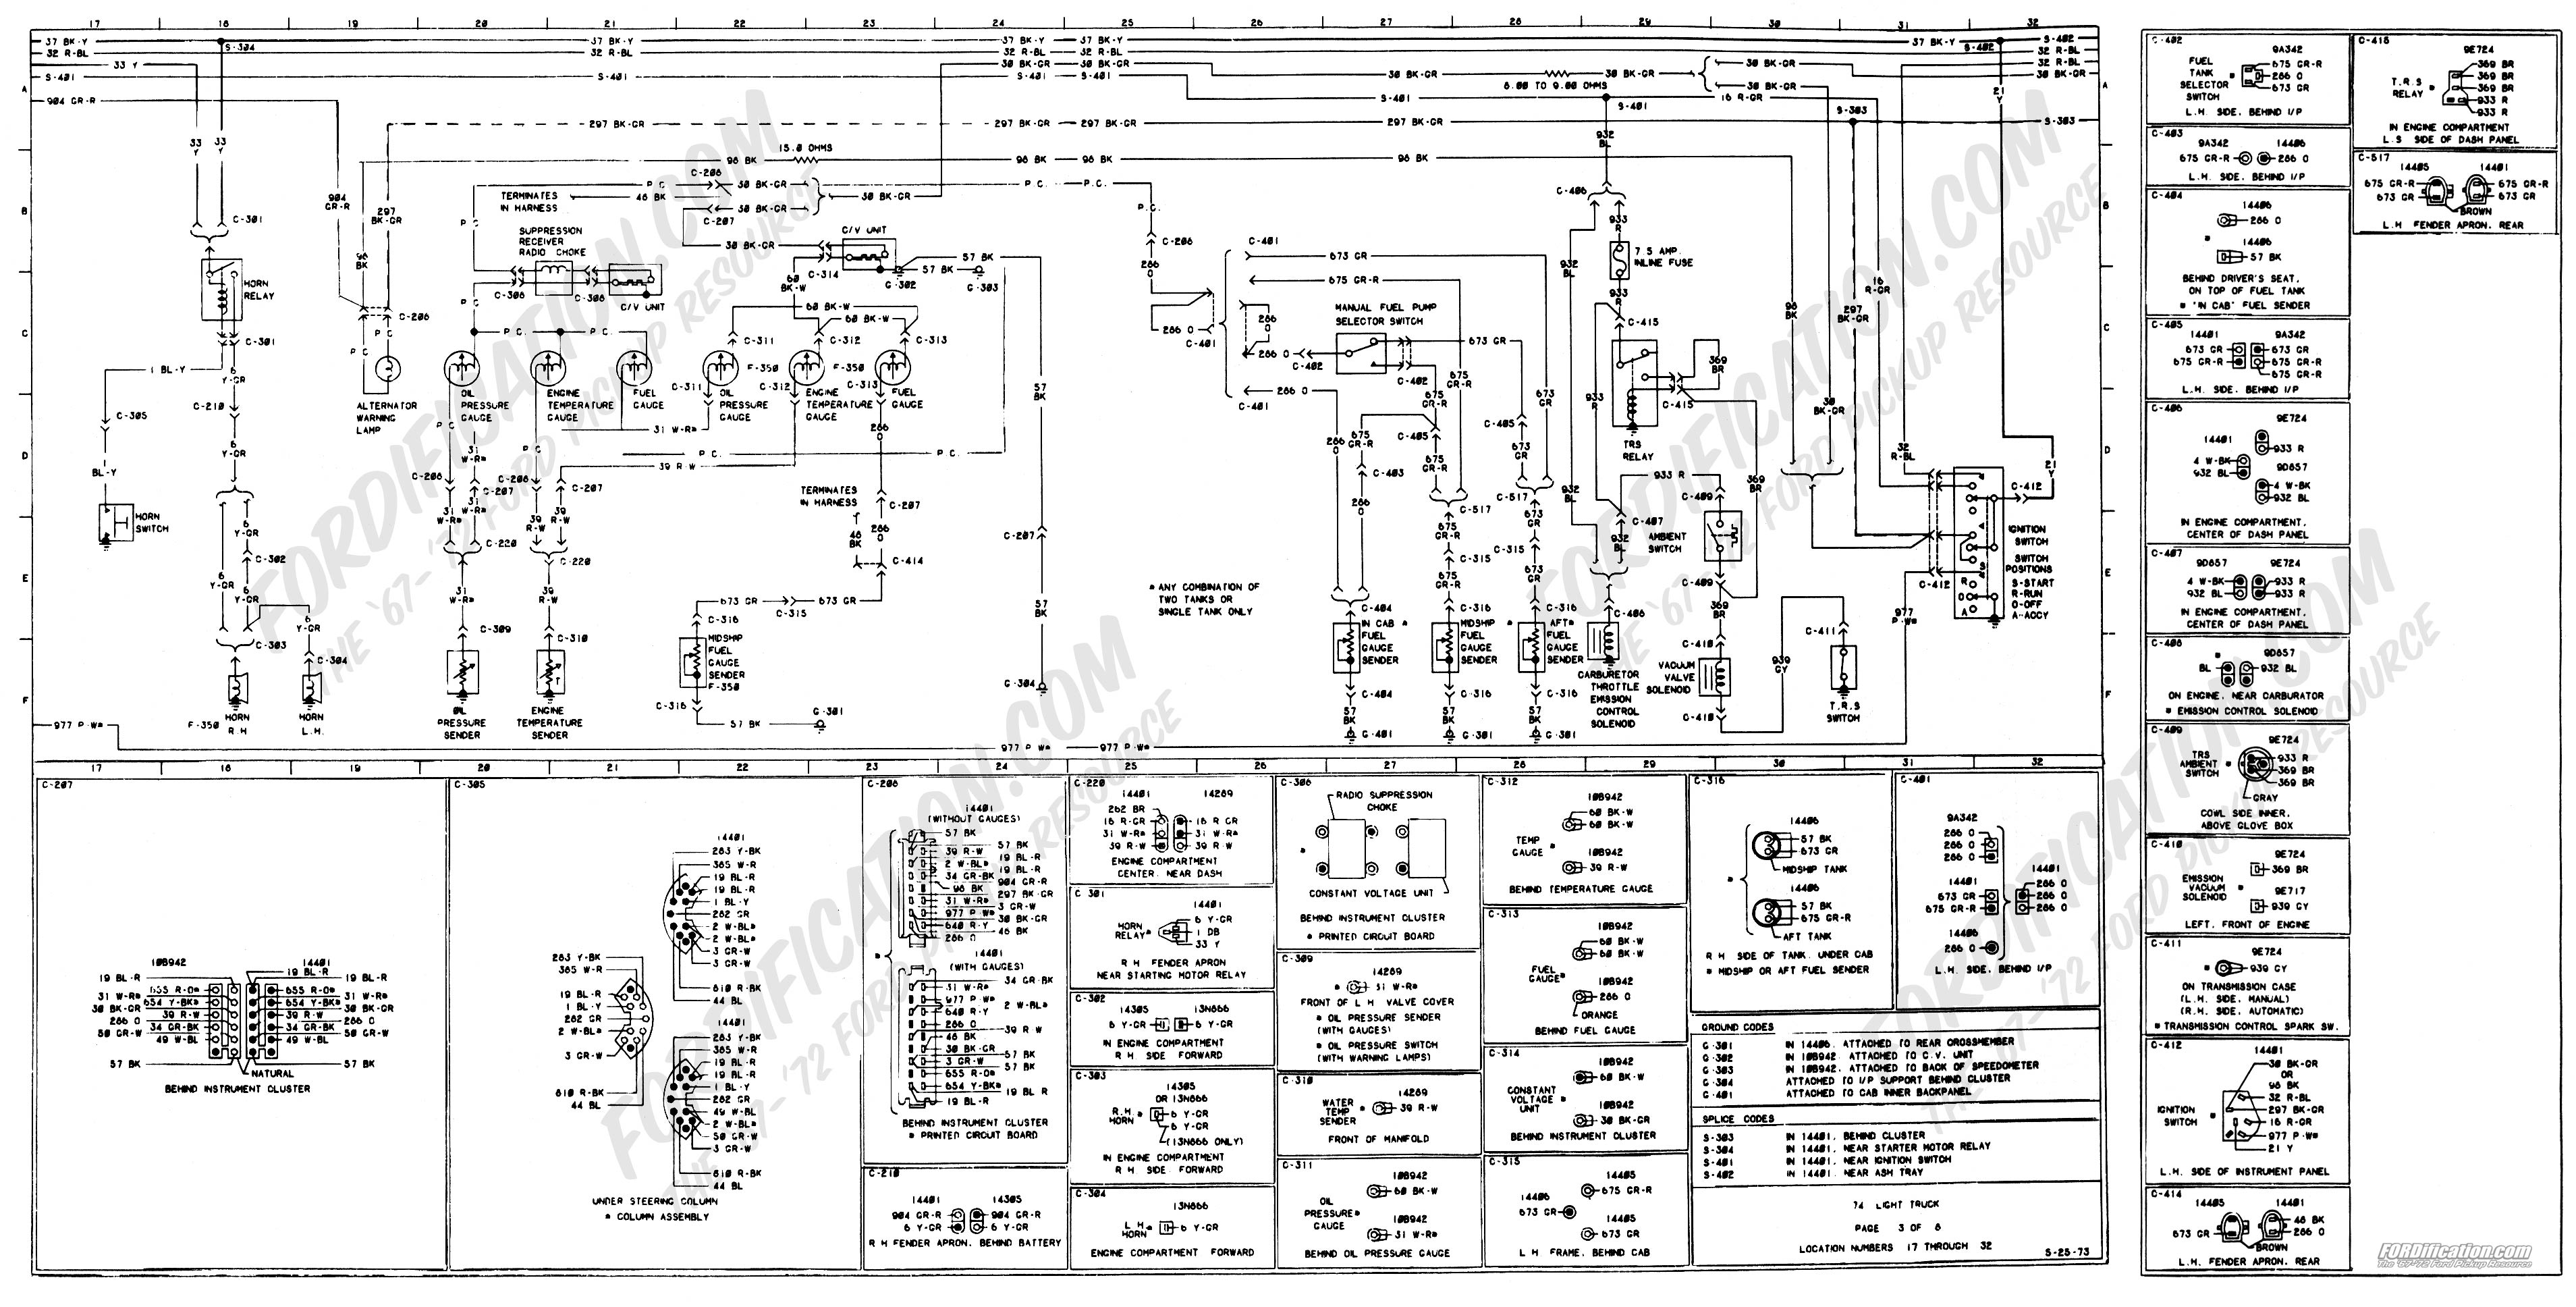 wiring_74master_3of8 1973 1979 ford truck wiring diagrams & schematics fordification net Simple Electrical Wiring Diagrams at reclaimingppi.co